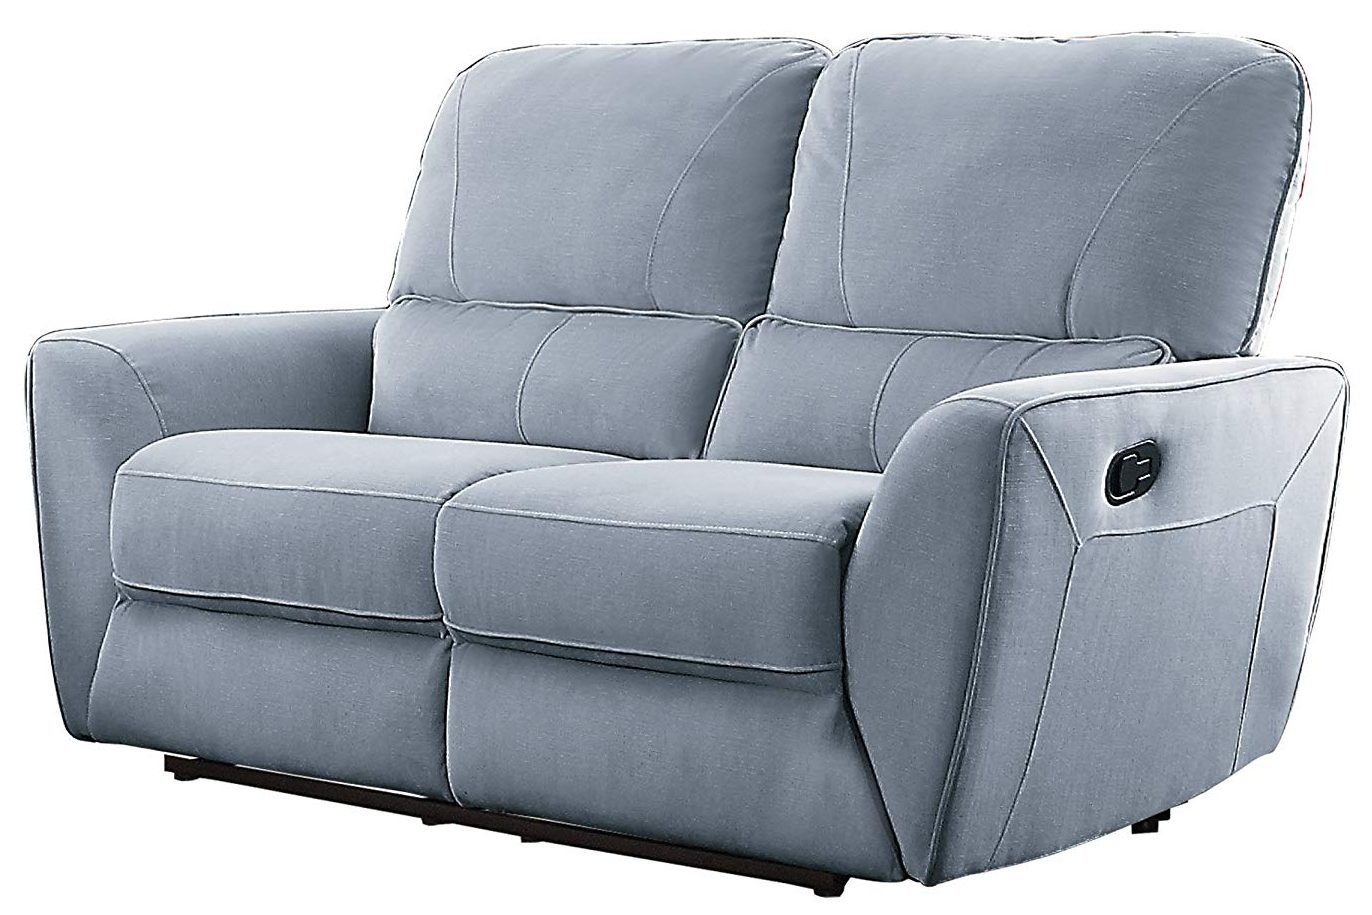 Gray Reclining Loveseat